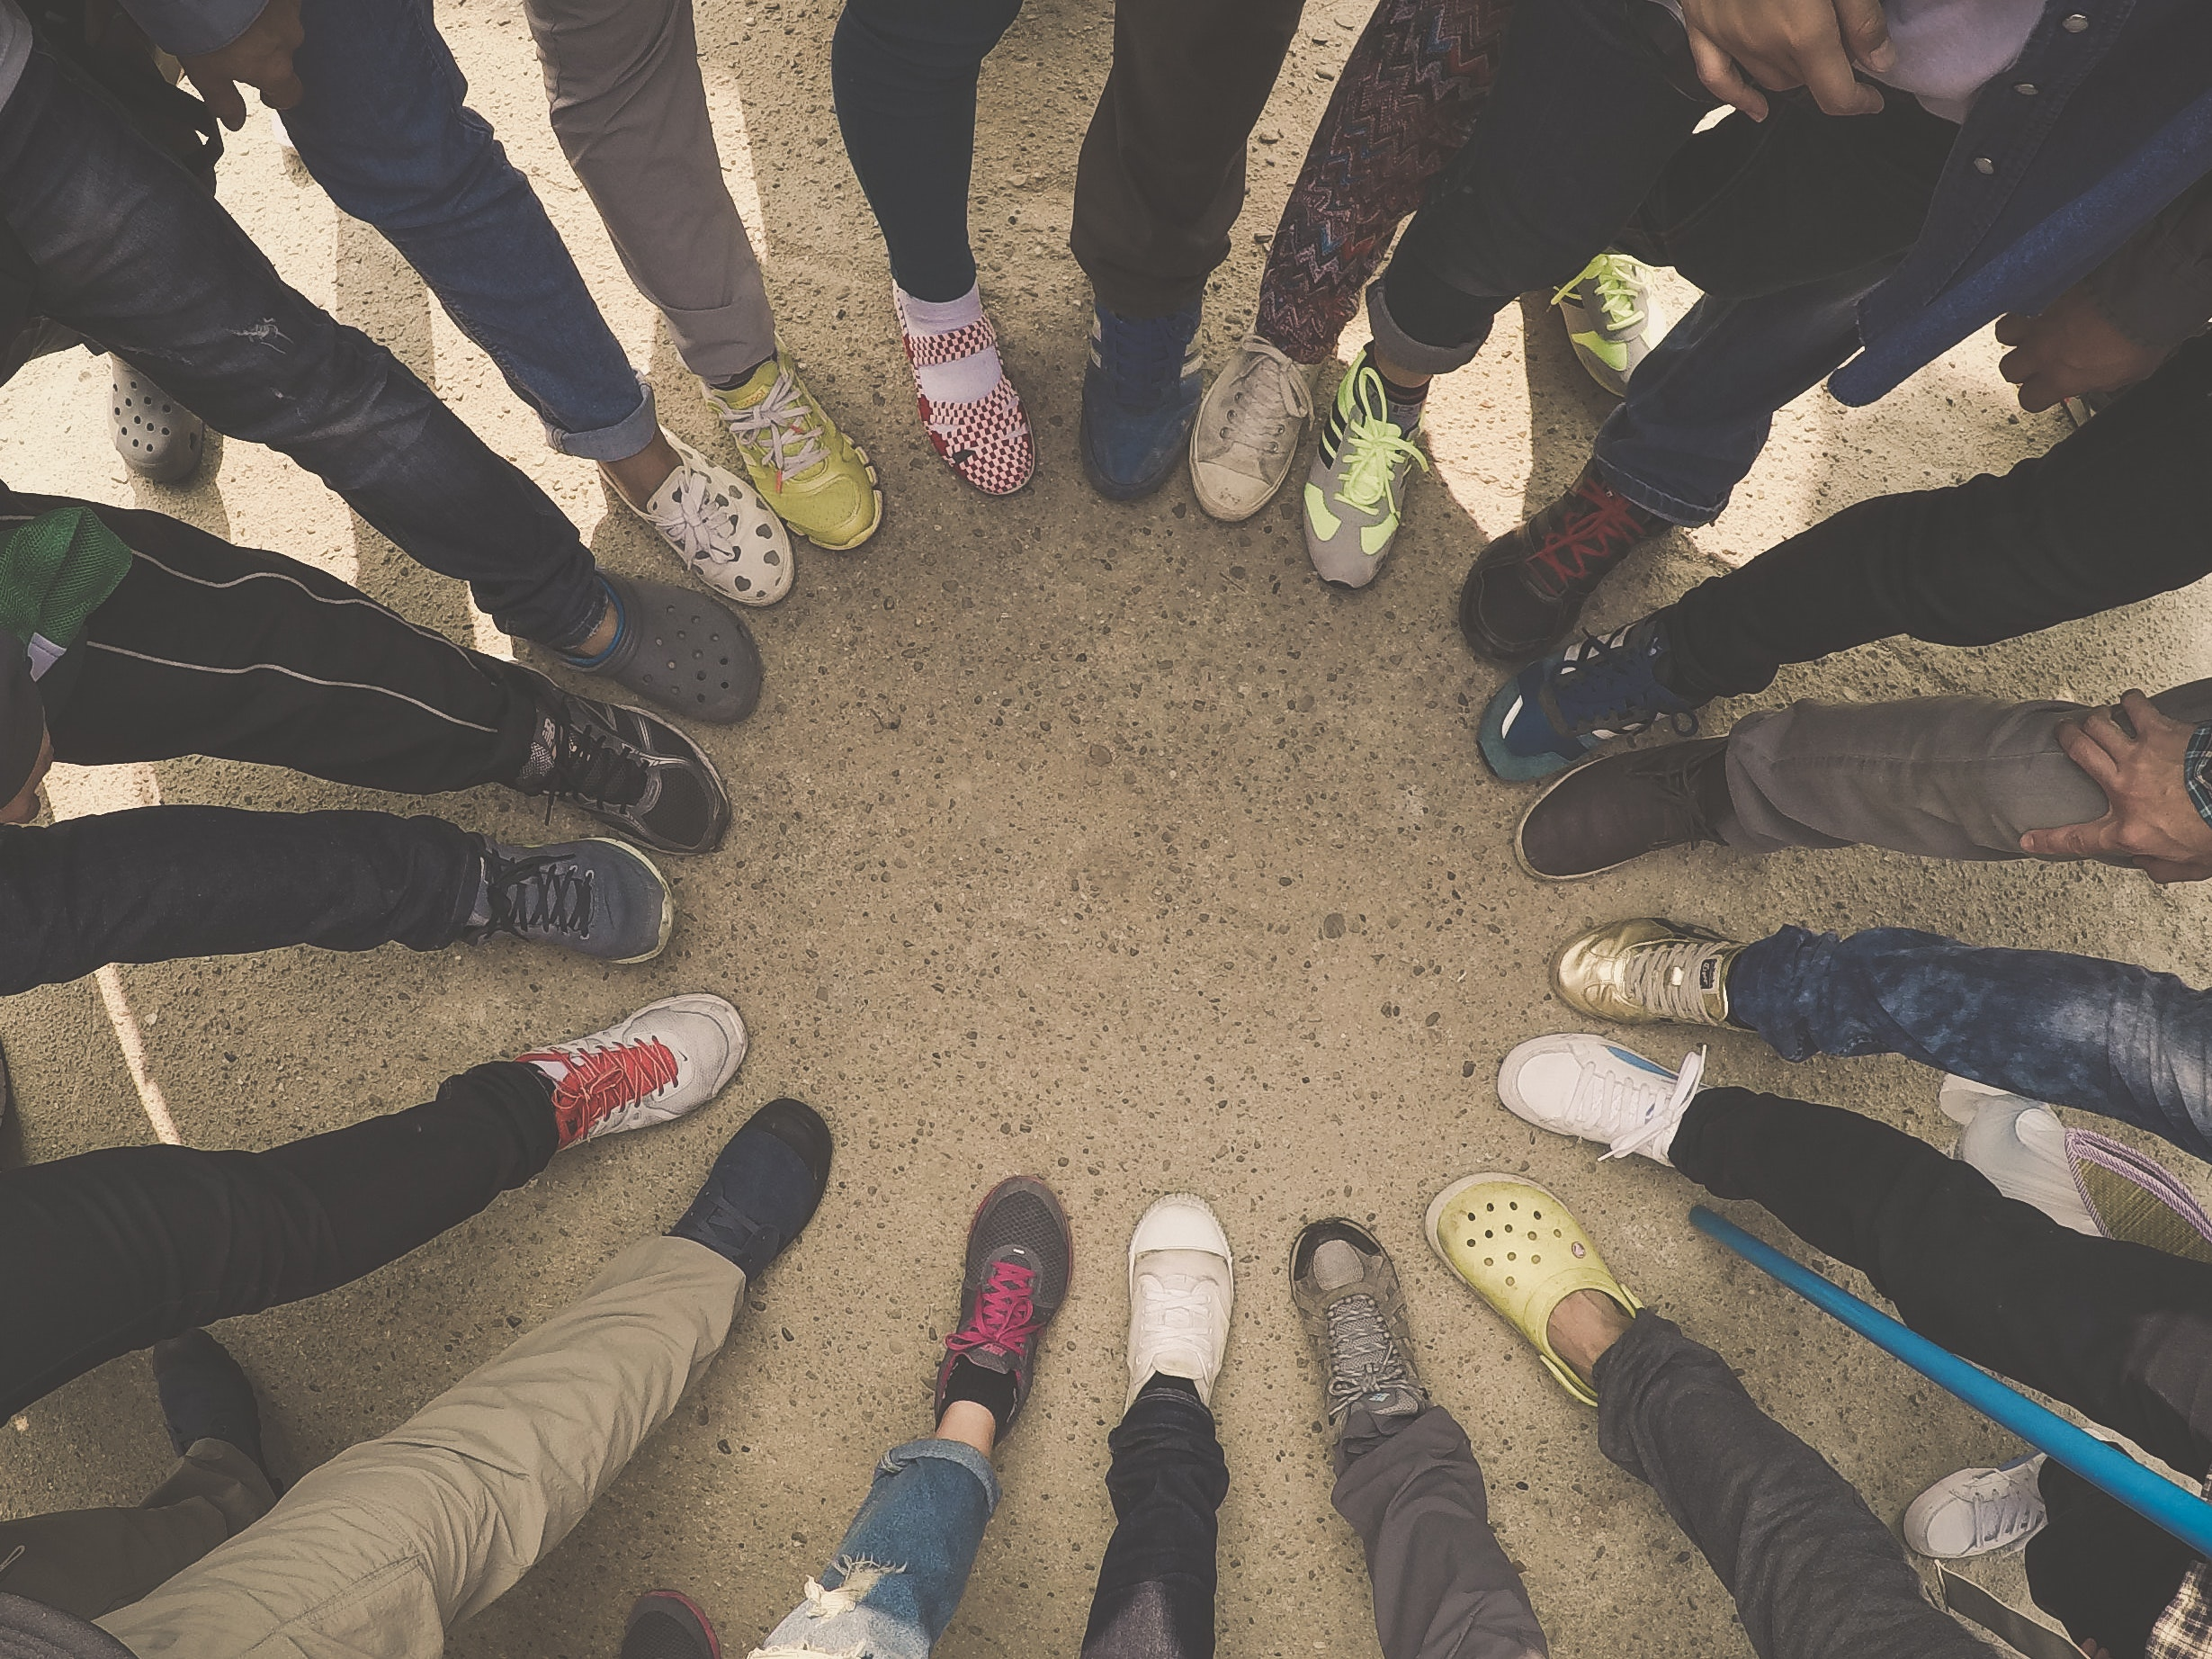 a group of people stand in a circle, lining up their feet